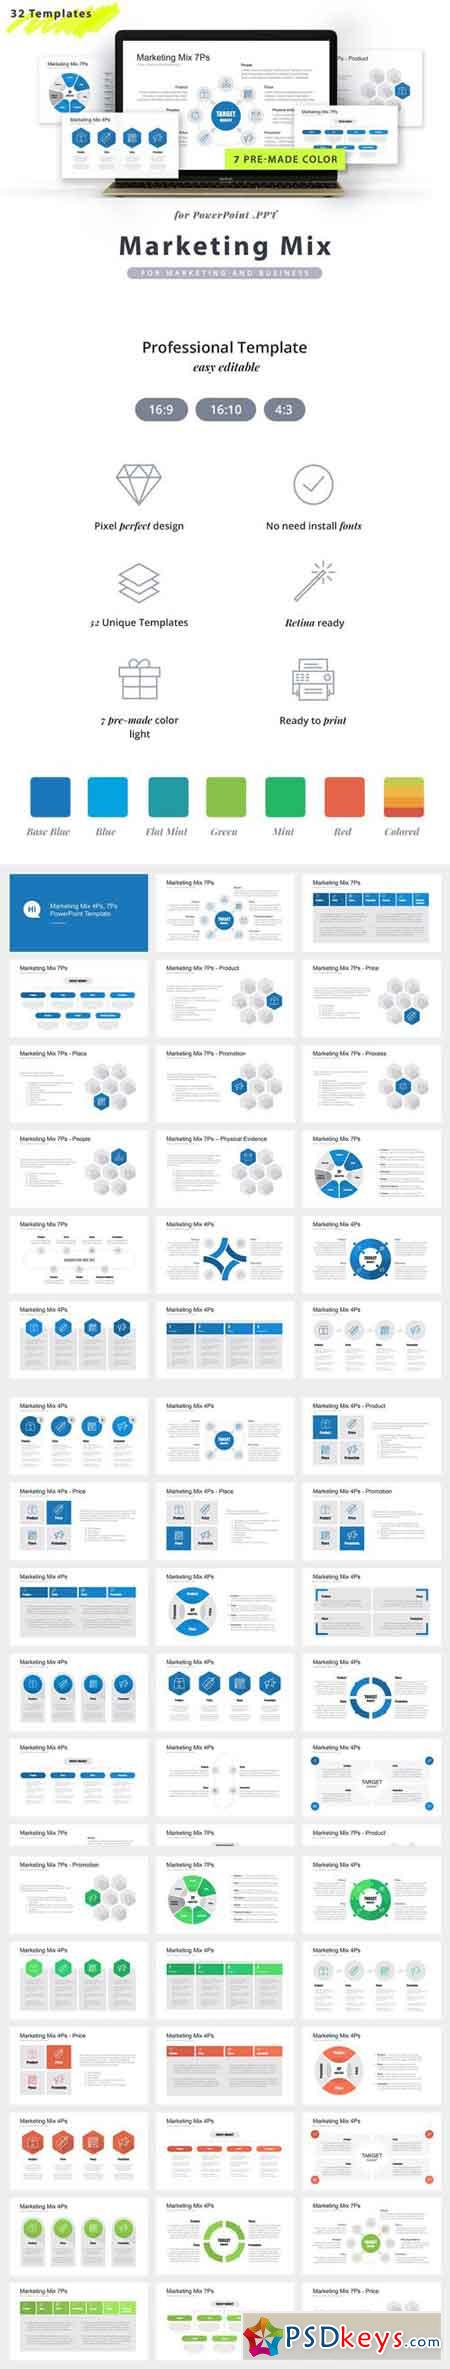 marketing mix powerpoint template free download photoshop vector